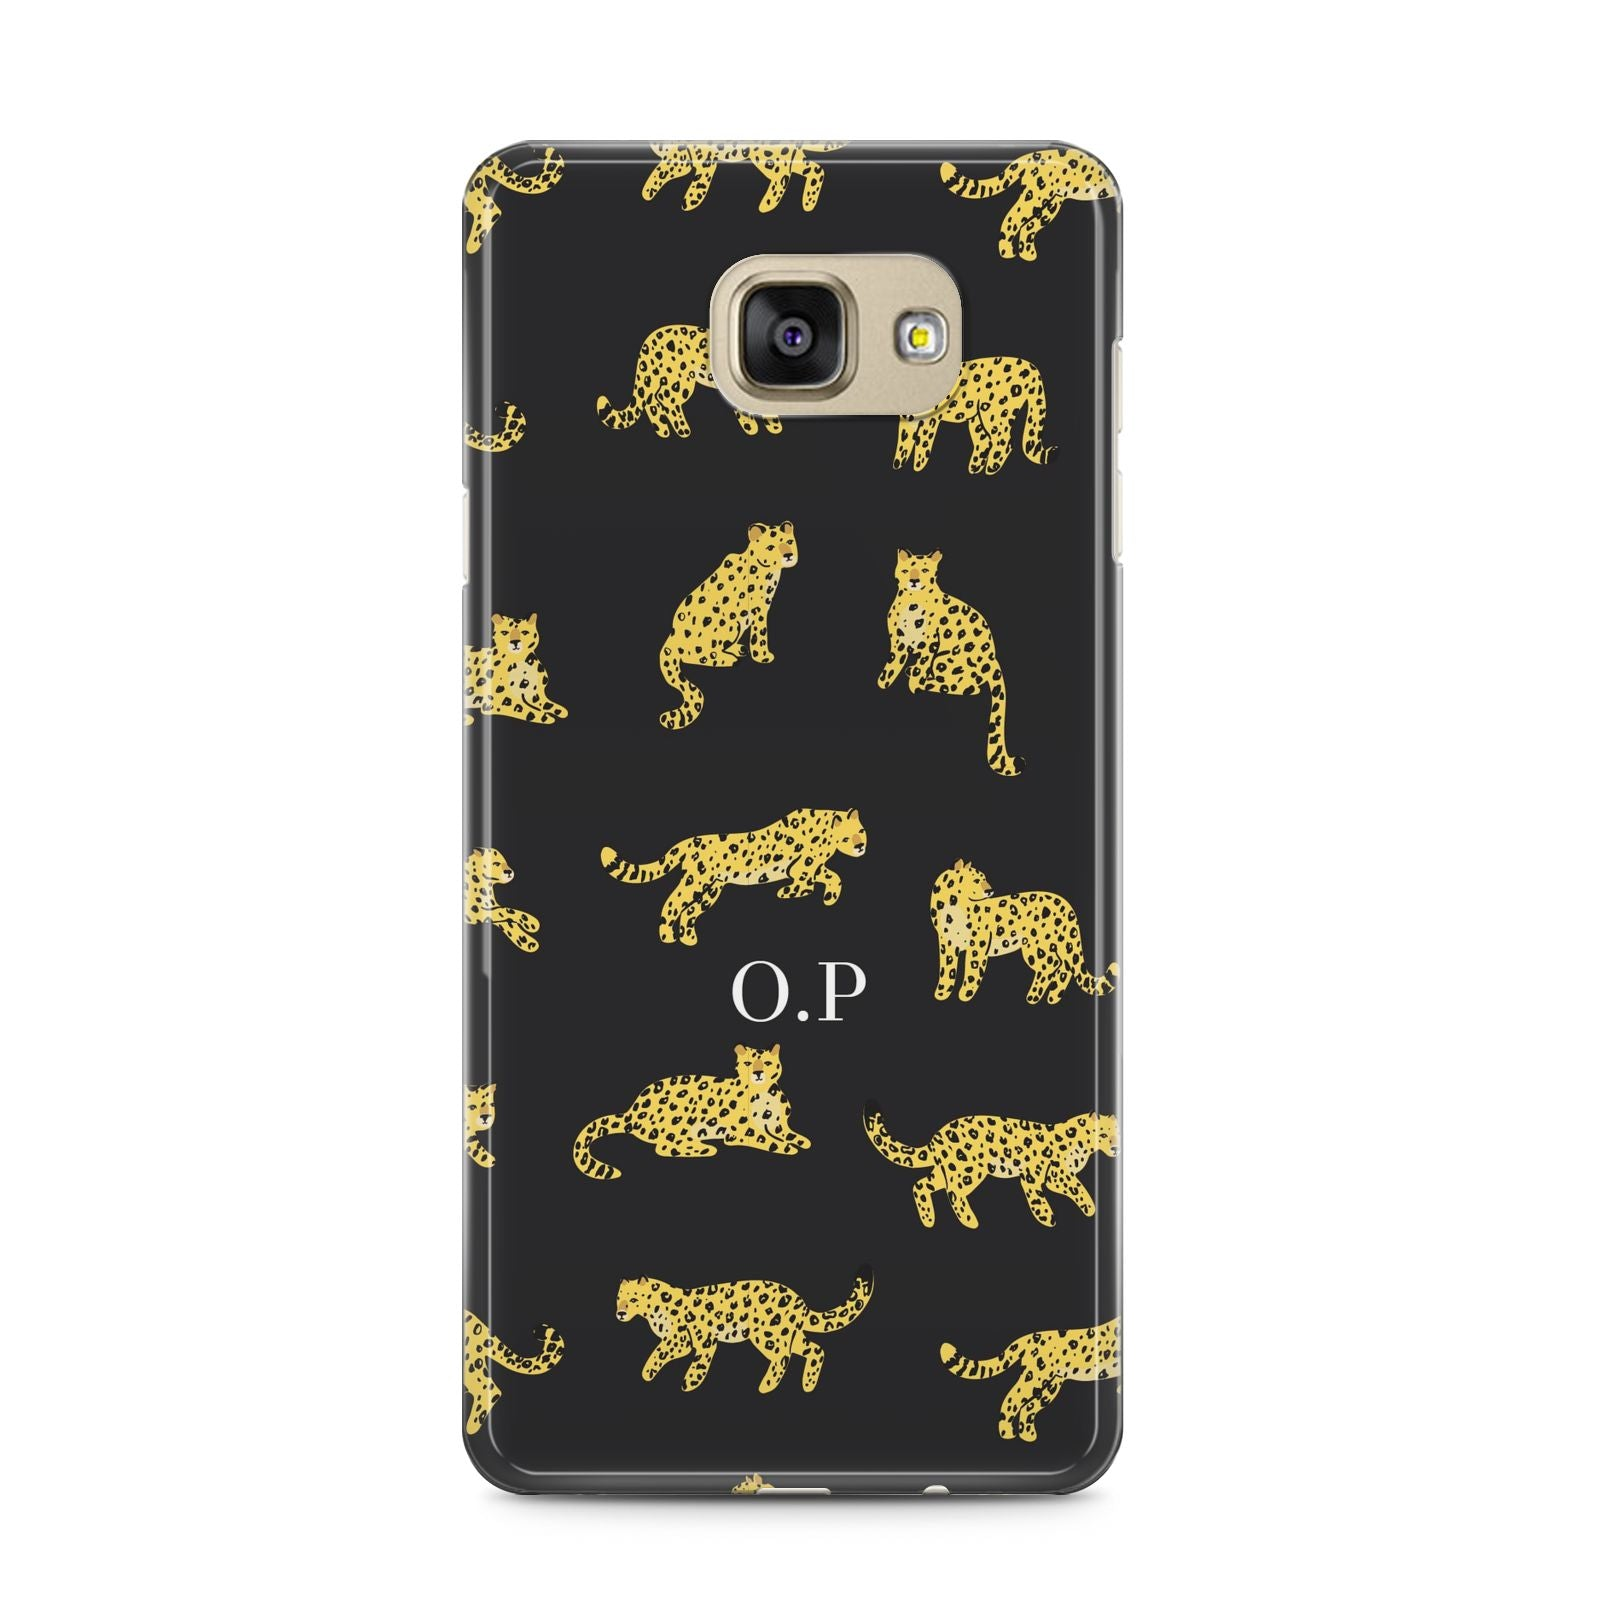 Prowling Leopard Samsung Galaxy A5 2016 Case on gold phone